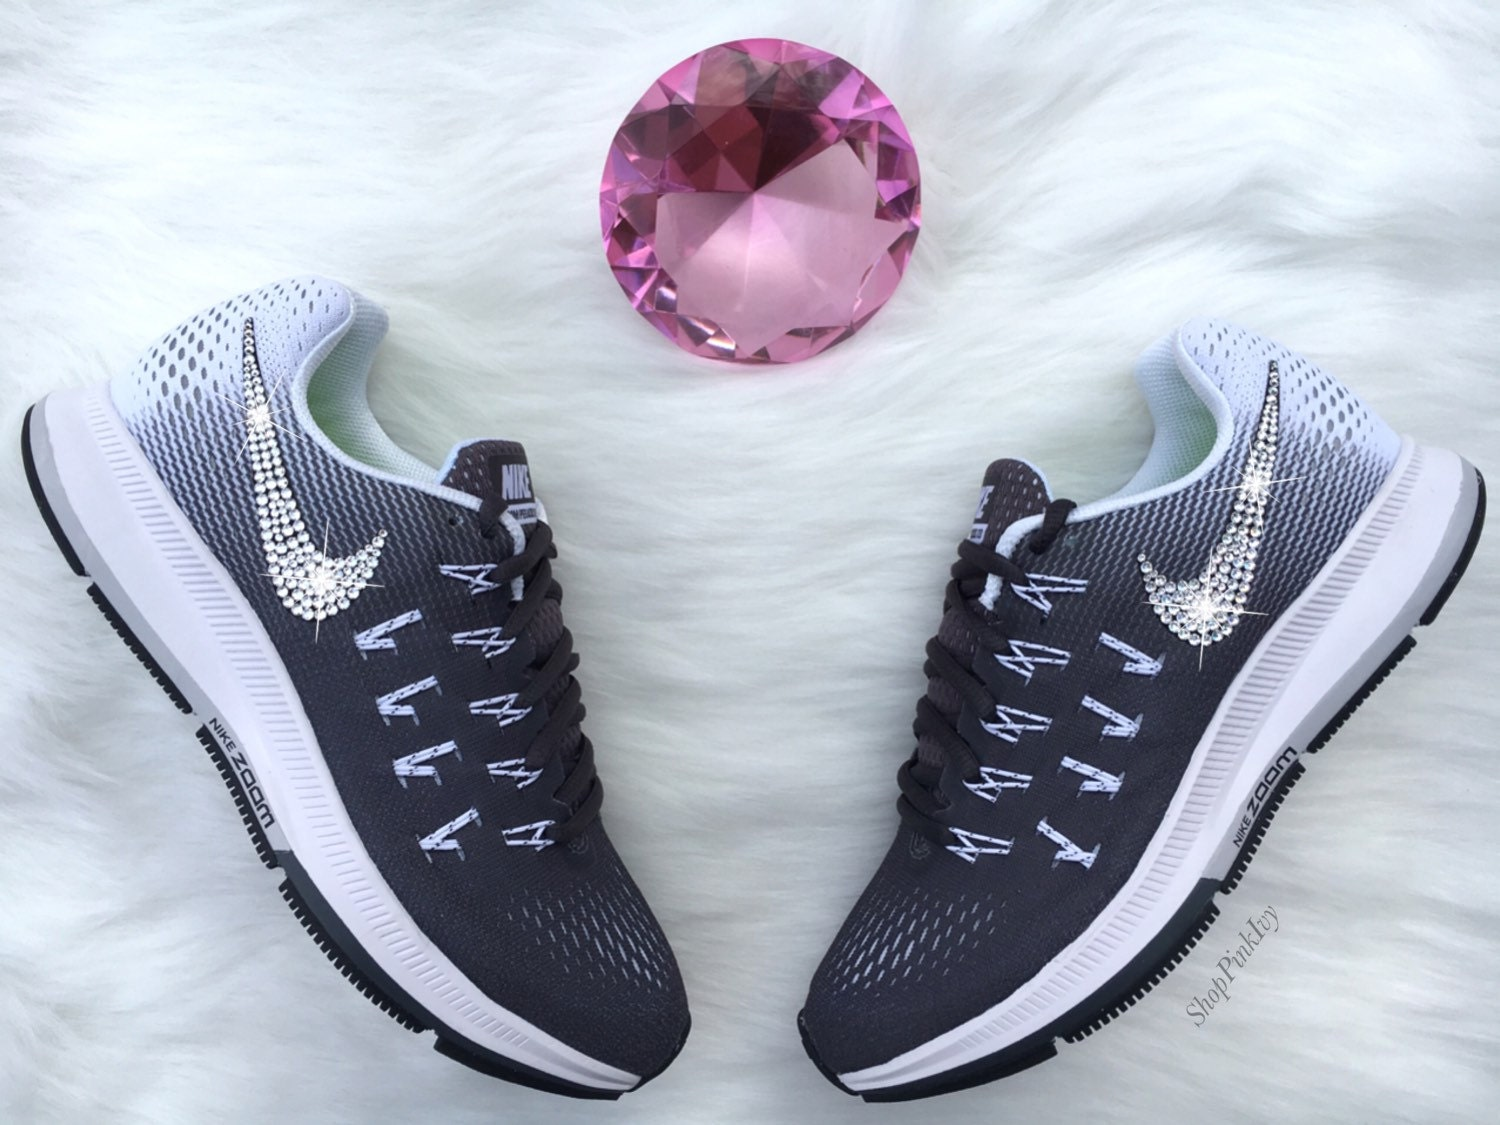 60%OFF 2016 Swarovski Nike Air Zoom Pegasus 33 Customized by ShopPinkIvy 015d3f4e5e